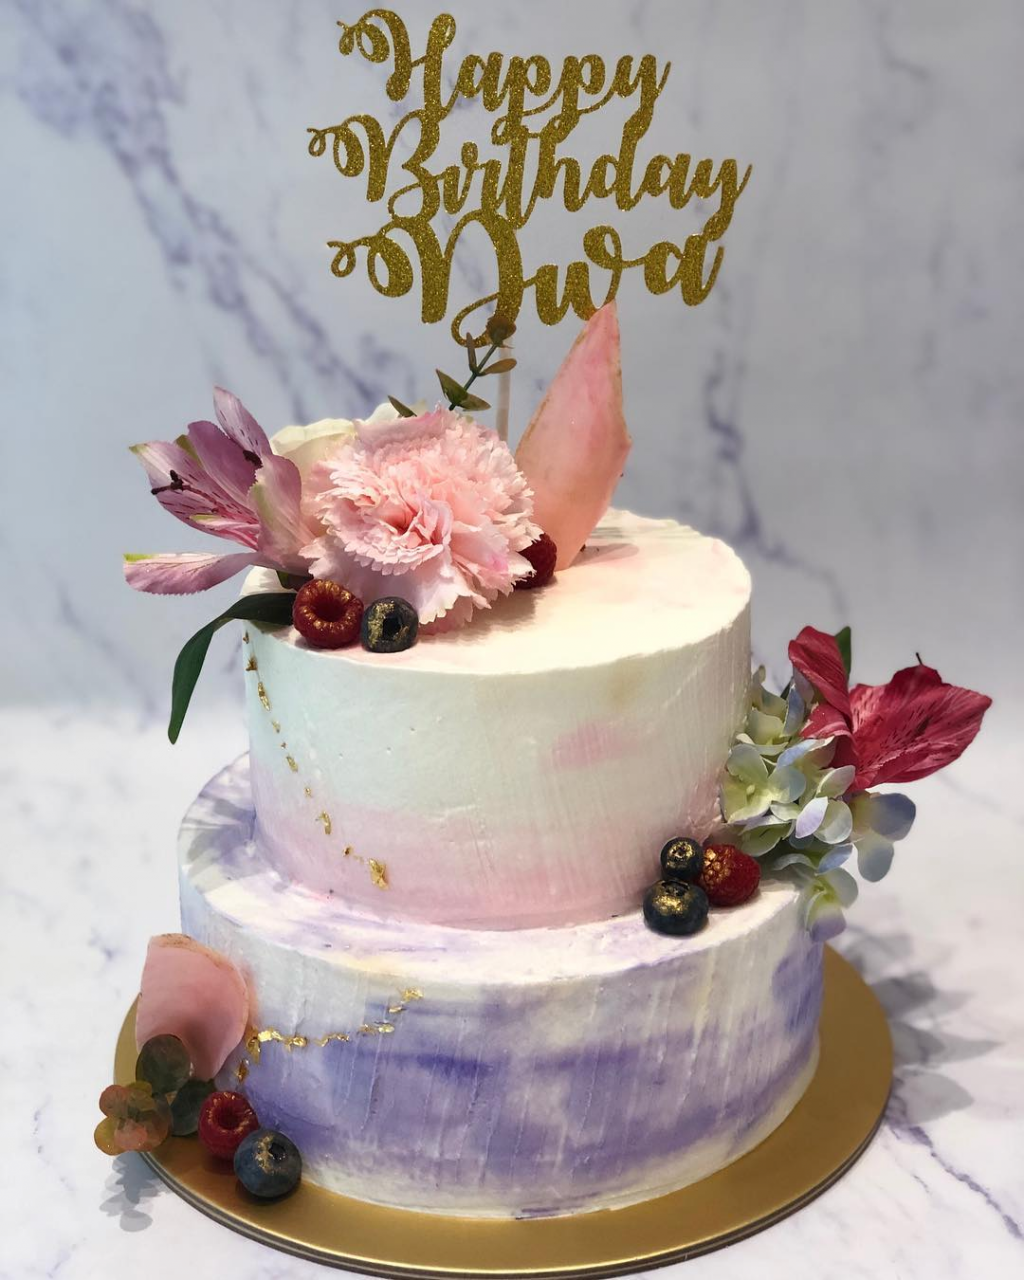 customised birthday cakes home baker singapore cotton home bakes floral